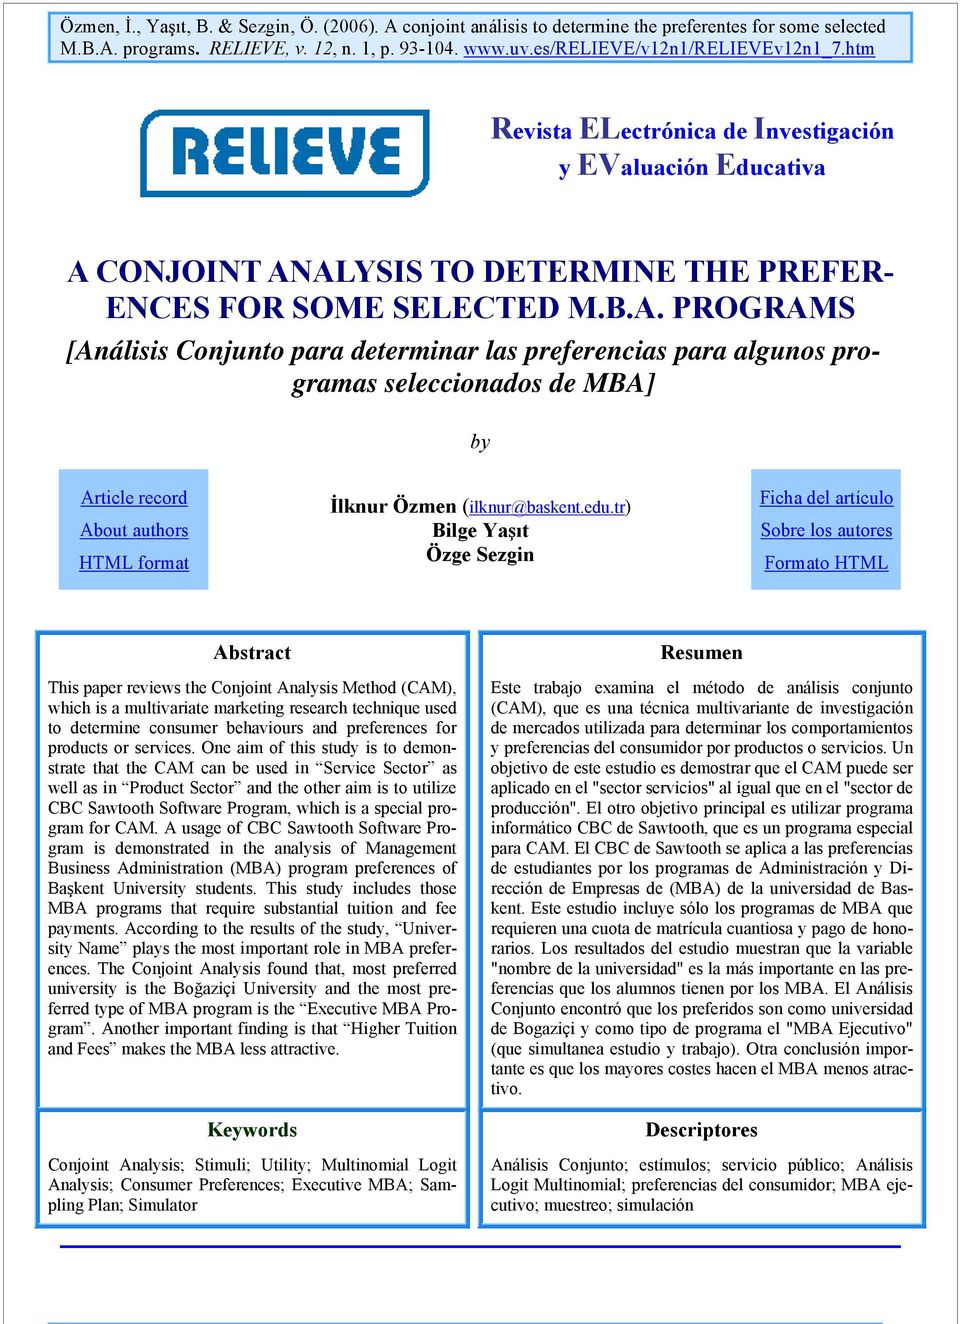 edu.tr) Bilge Yaşıt Özge Sezgin Ficha del artículo Sobre los autores Formato HTML Abstract This paper reviews the Conjoint Analysis Method (CAM), which is a multivariate marketing research technique